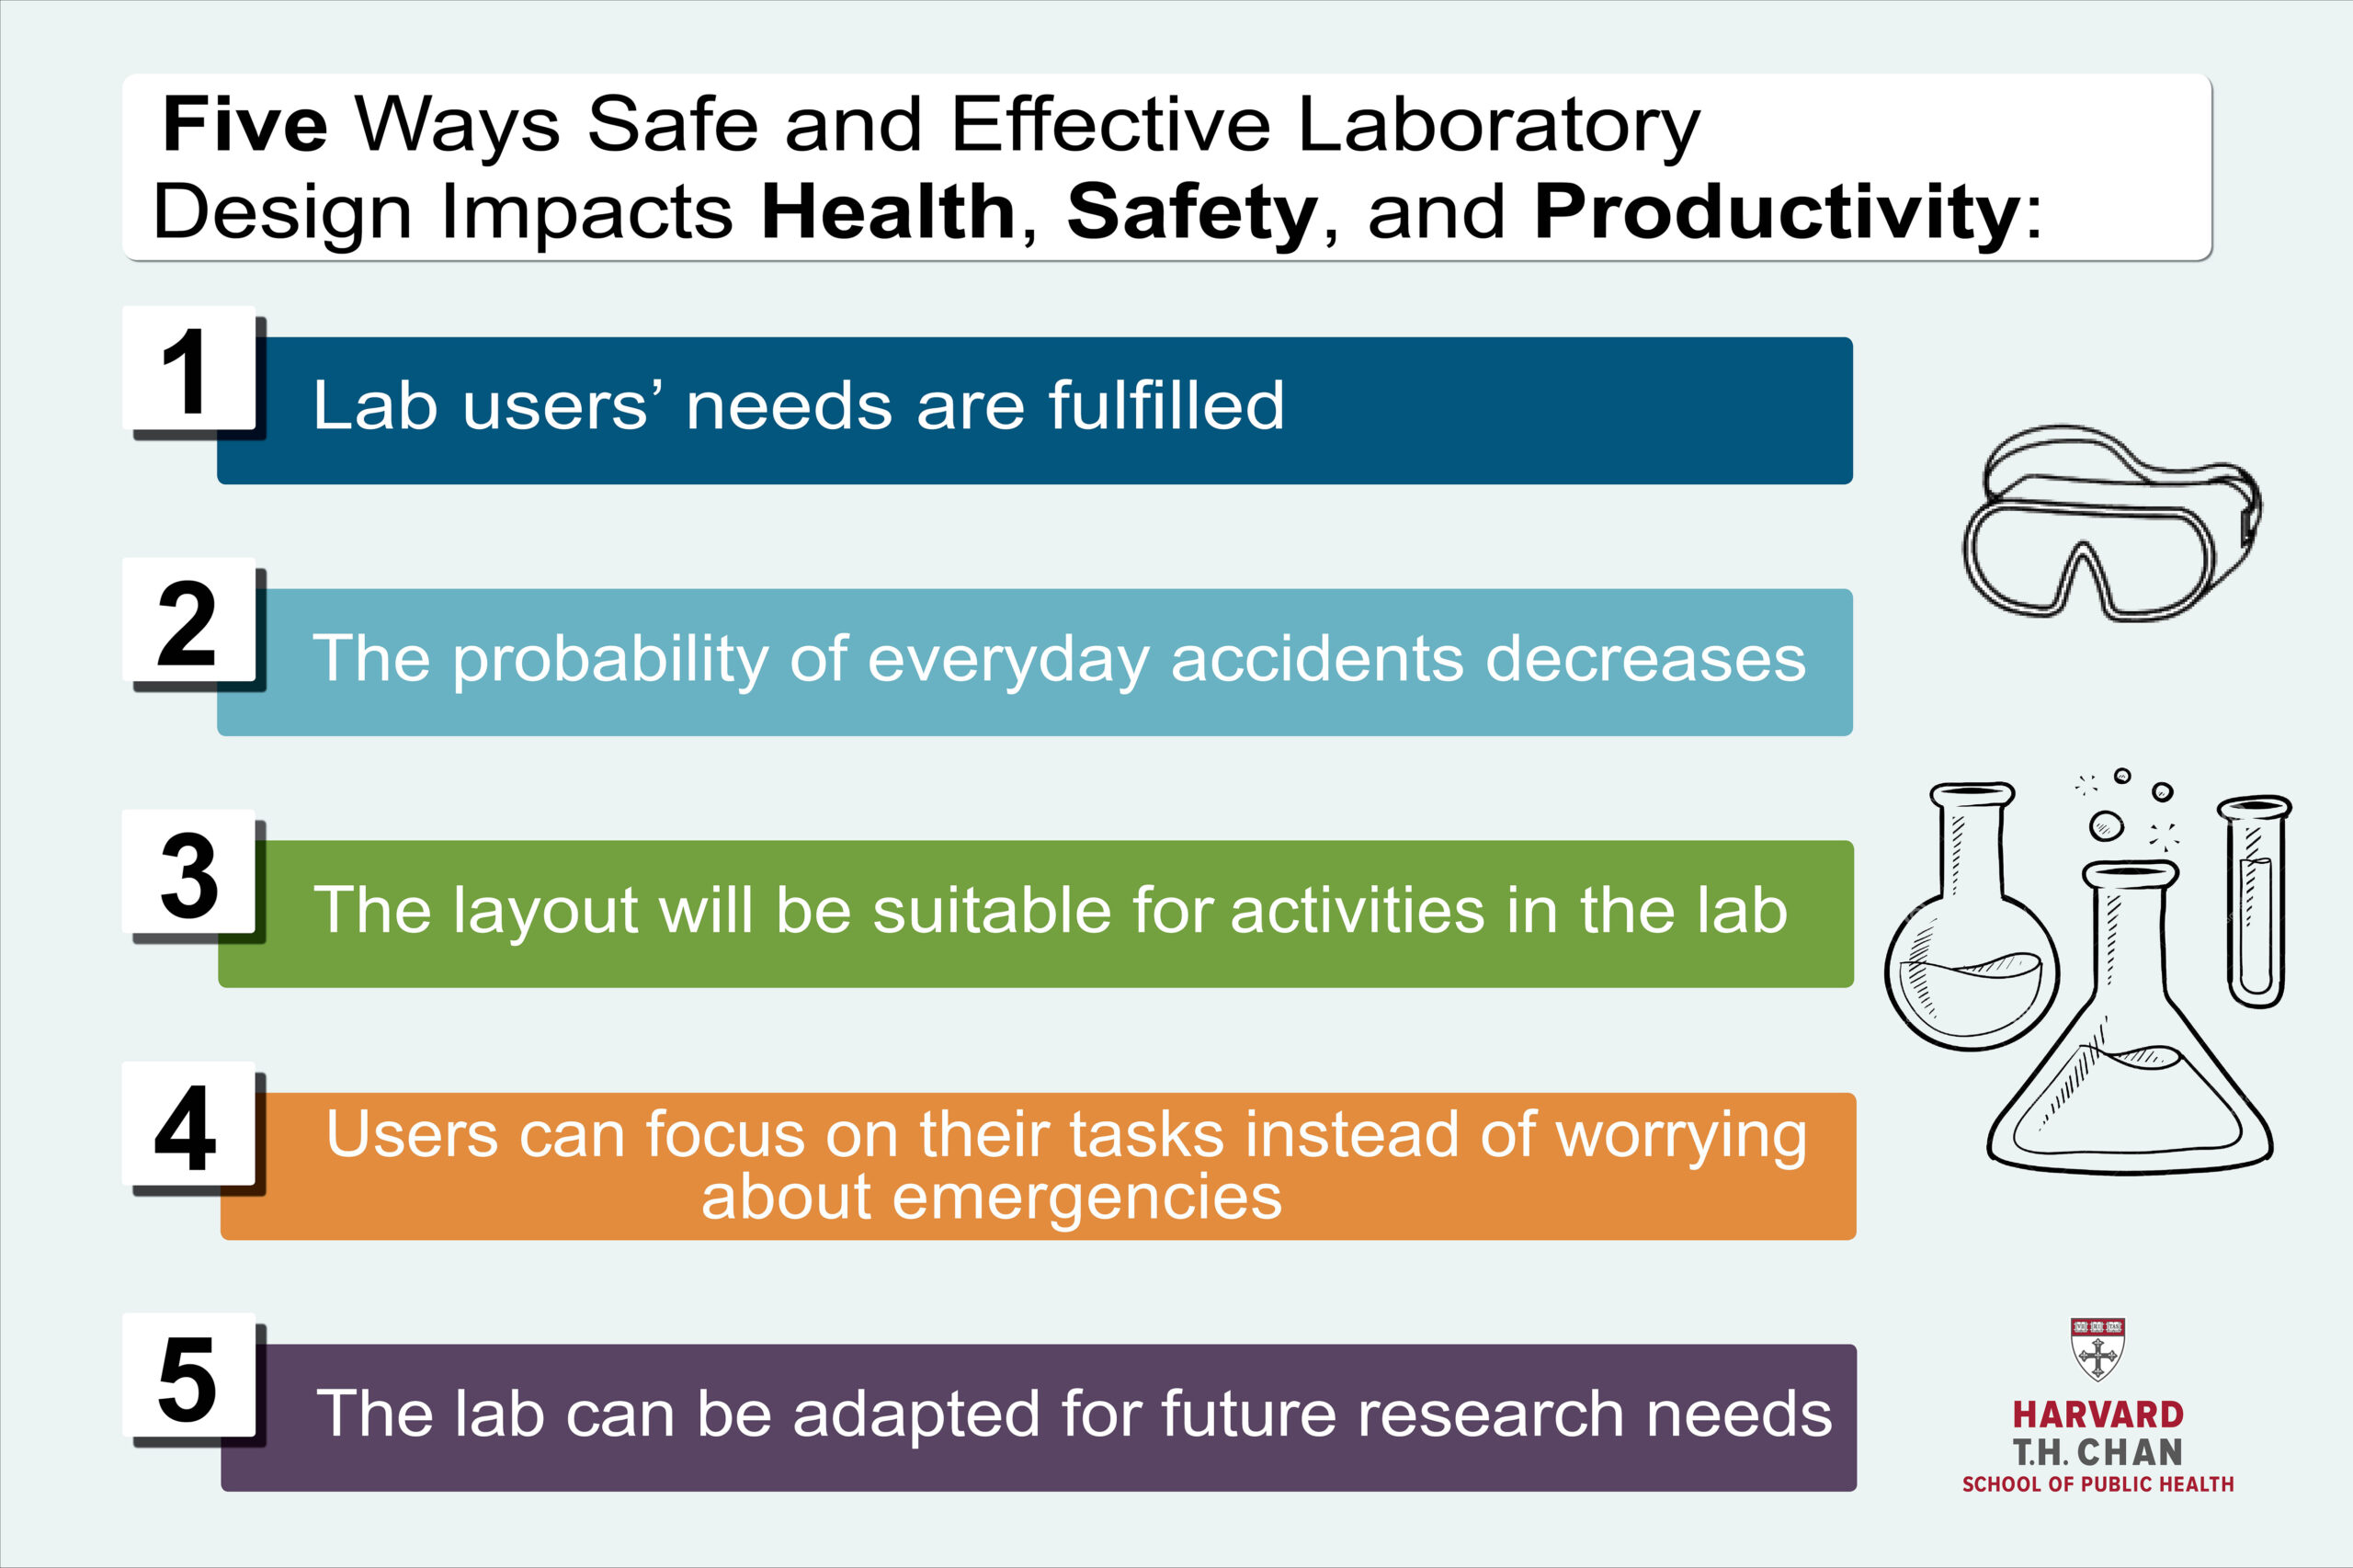 Five Ways Effective Laboratory Design Impacts Health, Safety, and Productivity